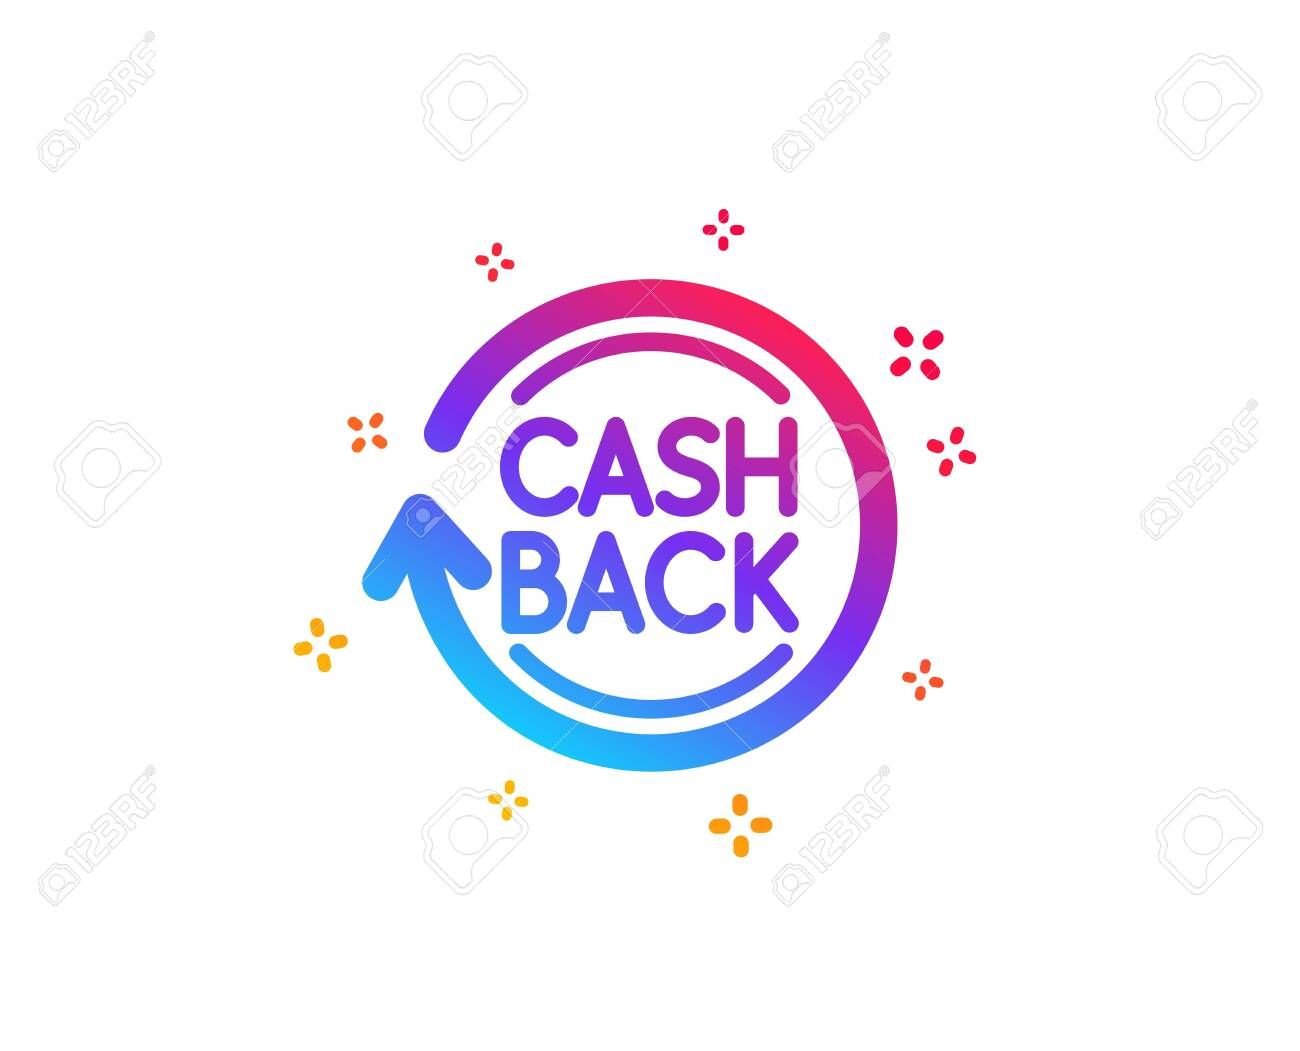 cashback service icon money transfer sign rotation arrow symbol dynamic shapes gradient design cashback icon cl in 2020 gradient design arrow symbol menu template cashback service icon money transfer